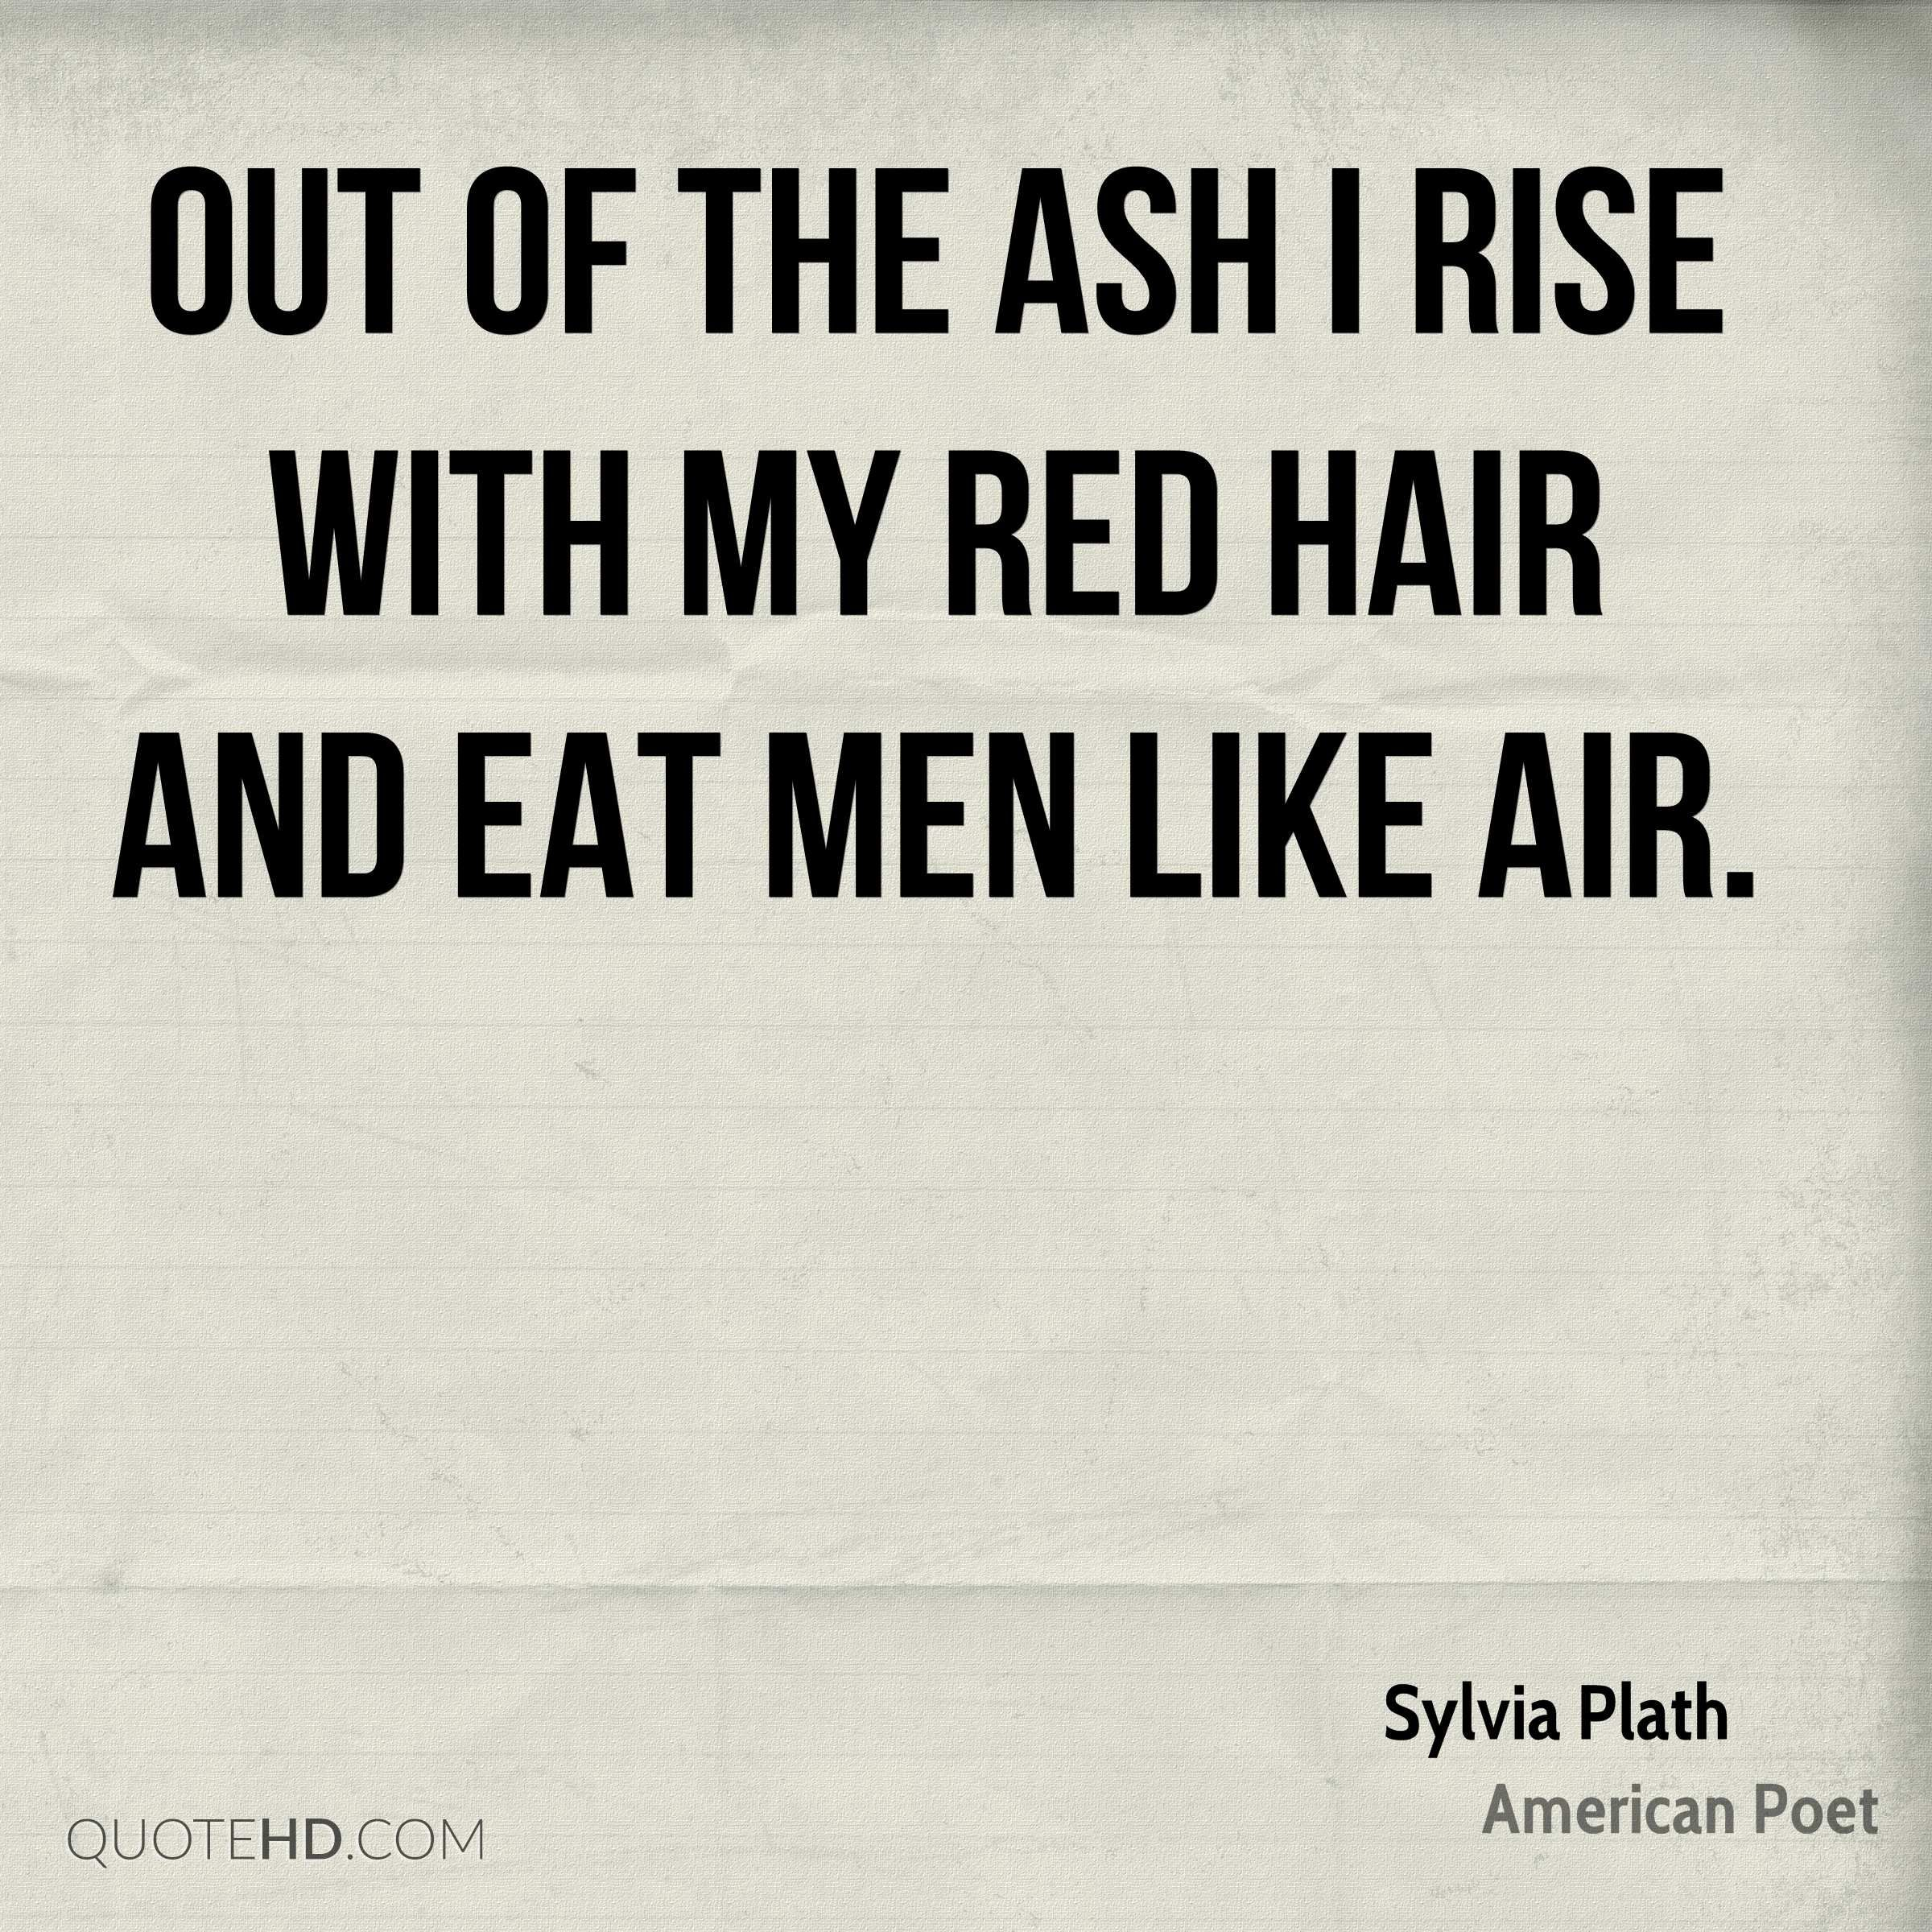 Sylvia Plath Love Quotes Amazing Image Result For Sylvia Plath Quotes  Quotes  Pinterest  Sylvia